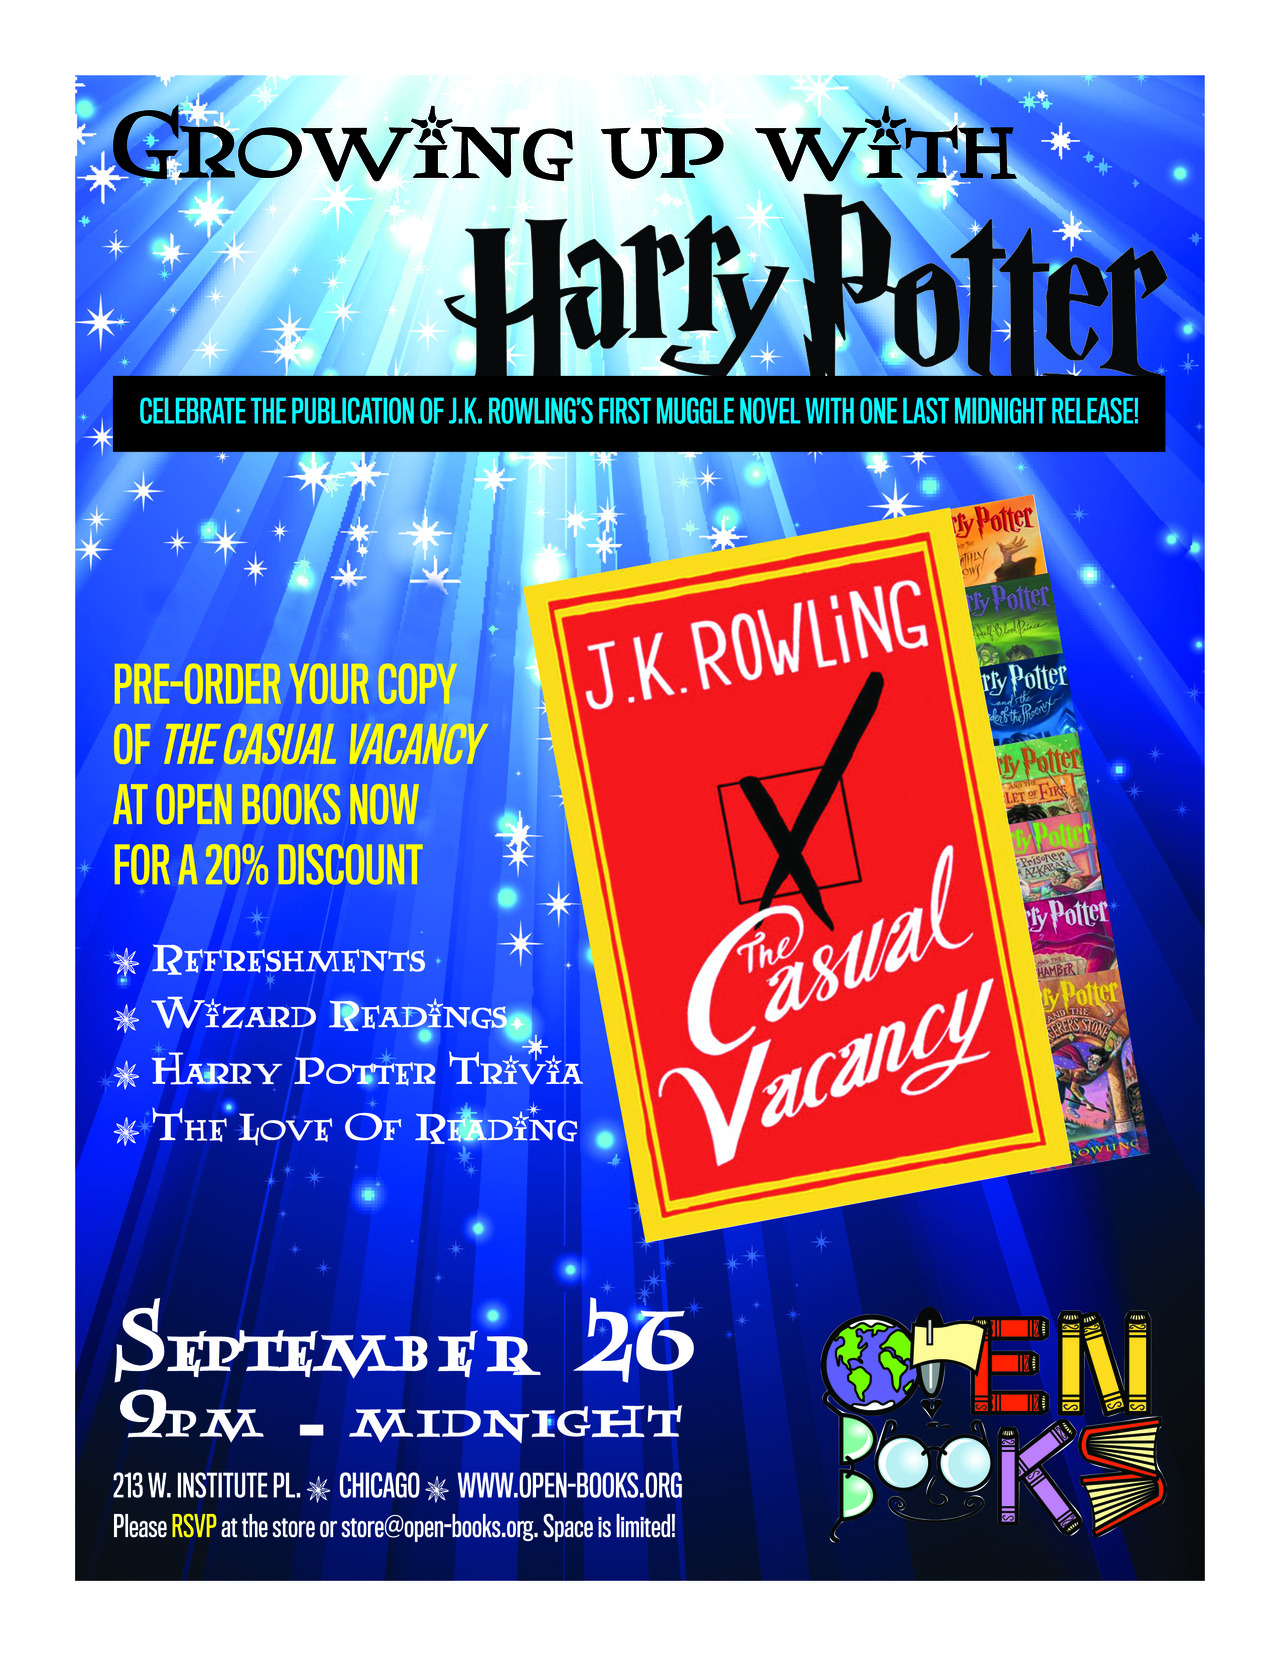 """You thought you had attended your last midnight book release. Think again!<br /><br /><br /><br />We are very excited to officially announce our celebration of the love of reading, the impact that J.K. Rowling had on a generation of readers, and the release of J.K. Rowling's first Muggle novel,The Casual Vacancy!<br /><br /><br /><br />A lot of Harry Potter fans are now grown up, but find reading no less magical. Come out, stay up late, and help us celebrate reading and literacy!<br /><br /><br /><br />Open Books is now accepting pre-orders ofThe Casual Vacancy at a 20% discount. Stop in or contact the store to reserve yours today.<br /><br /><br /><br />Please feel free to spread the picture above and the text below far and wide.<br /><br /><br /><br />More details to come! ^KE<br /><br /><br /><br />—</p><br /><br /><br /><p>Literacy nonprofit and used bookstore Open Books celebrates the upcoming release of J.K. Rowling's latest novel, along with her famous wizard protagonist, with their event Growing Up With Harry Potter.<br /><br /><br /><br />The magical Harry Potter series has engaged millions of children and young adults and transformed them into enthusiastic readers. In fact, according toThe Scholastic Kids and Family Reading Report, """"51% of children between the ages of 5 and 17 years old say they did not read books for fun before reading the Harry Potter series."""" As Open Books is dedicated to fostering a love of reading and writing through its literacy programs and award-winning bookstore, we will be celebrating the work of J.K. Rowling, an author who has truly inspired a generation of book-lovers.<br /><br /><br /><br />Relive the magic of Harry Potter and celebrate the publication of Rowlings' first Muggle novel with one last midnight release!The evening will be full of Harry Potter nostalgia, including trivia, wizard readings, refreshments, contests, and more. When the clock strikes midnight, all attendees will have the opportunity to be the first to exp"""